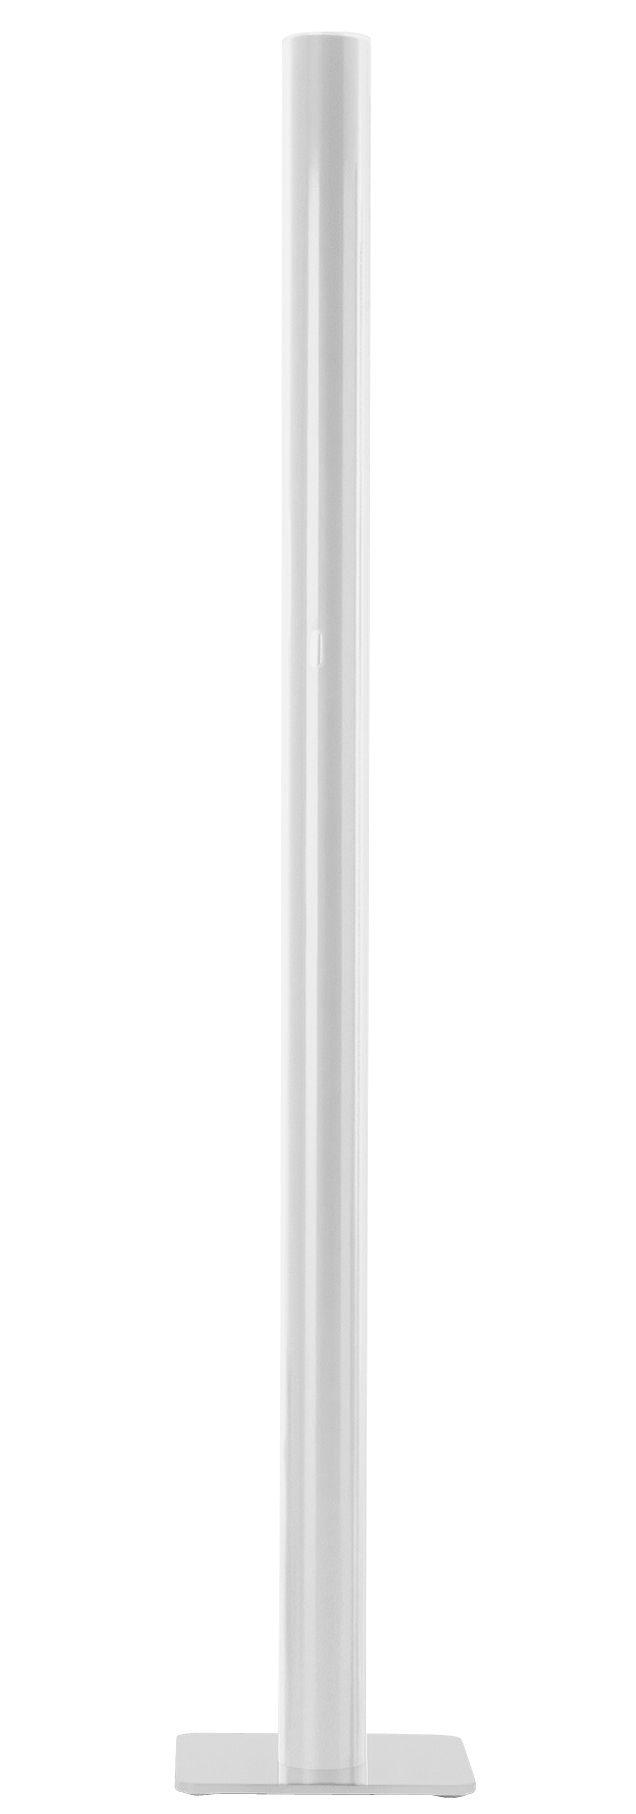 Lighting - Floor lamps - Ilio LED Floor lamp by Artemide - White - Painted aluminium, Painted steel